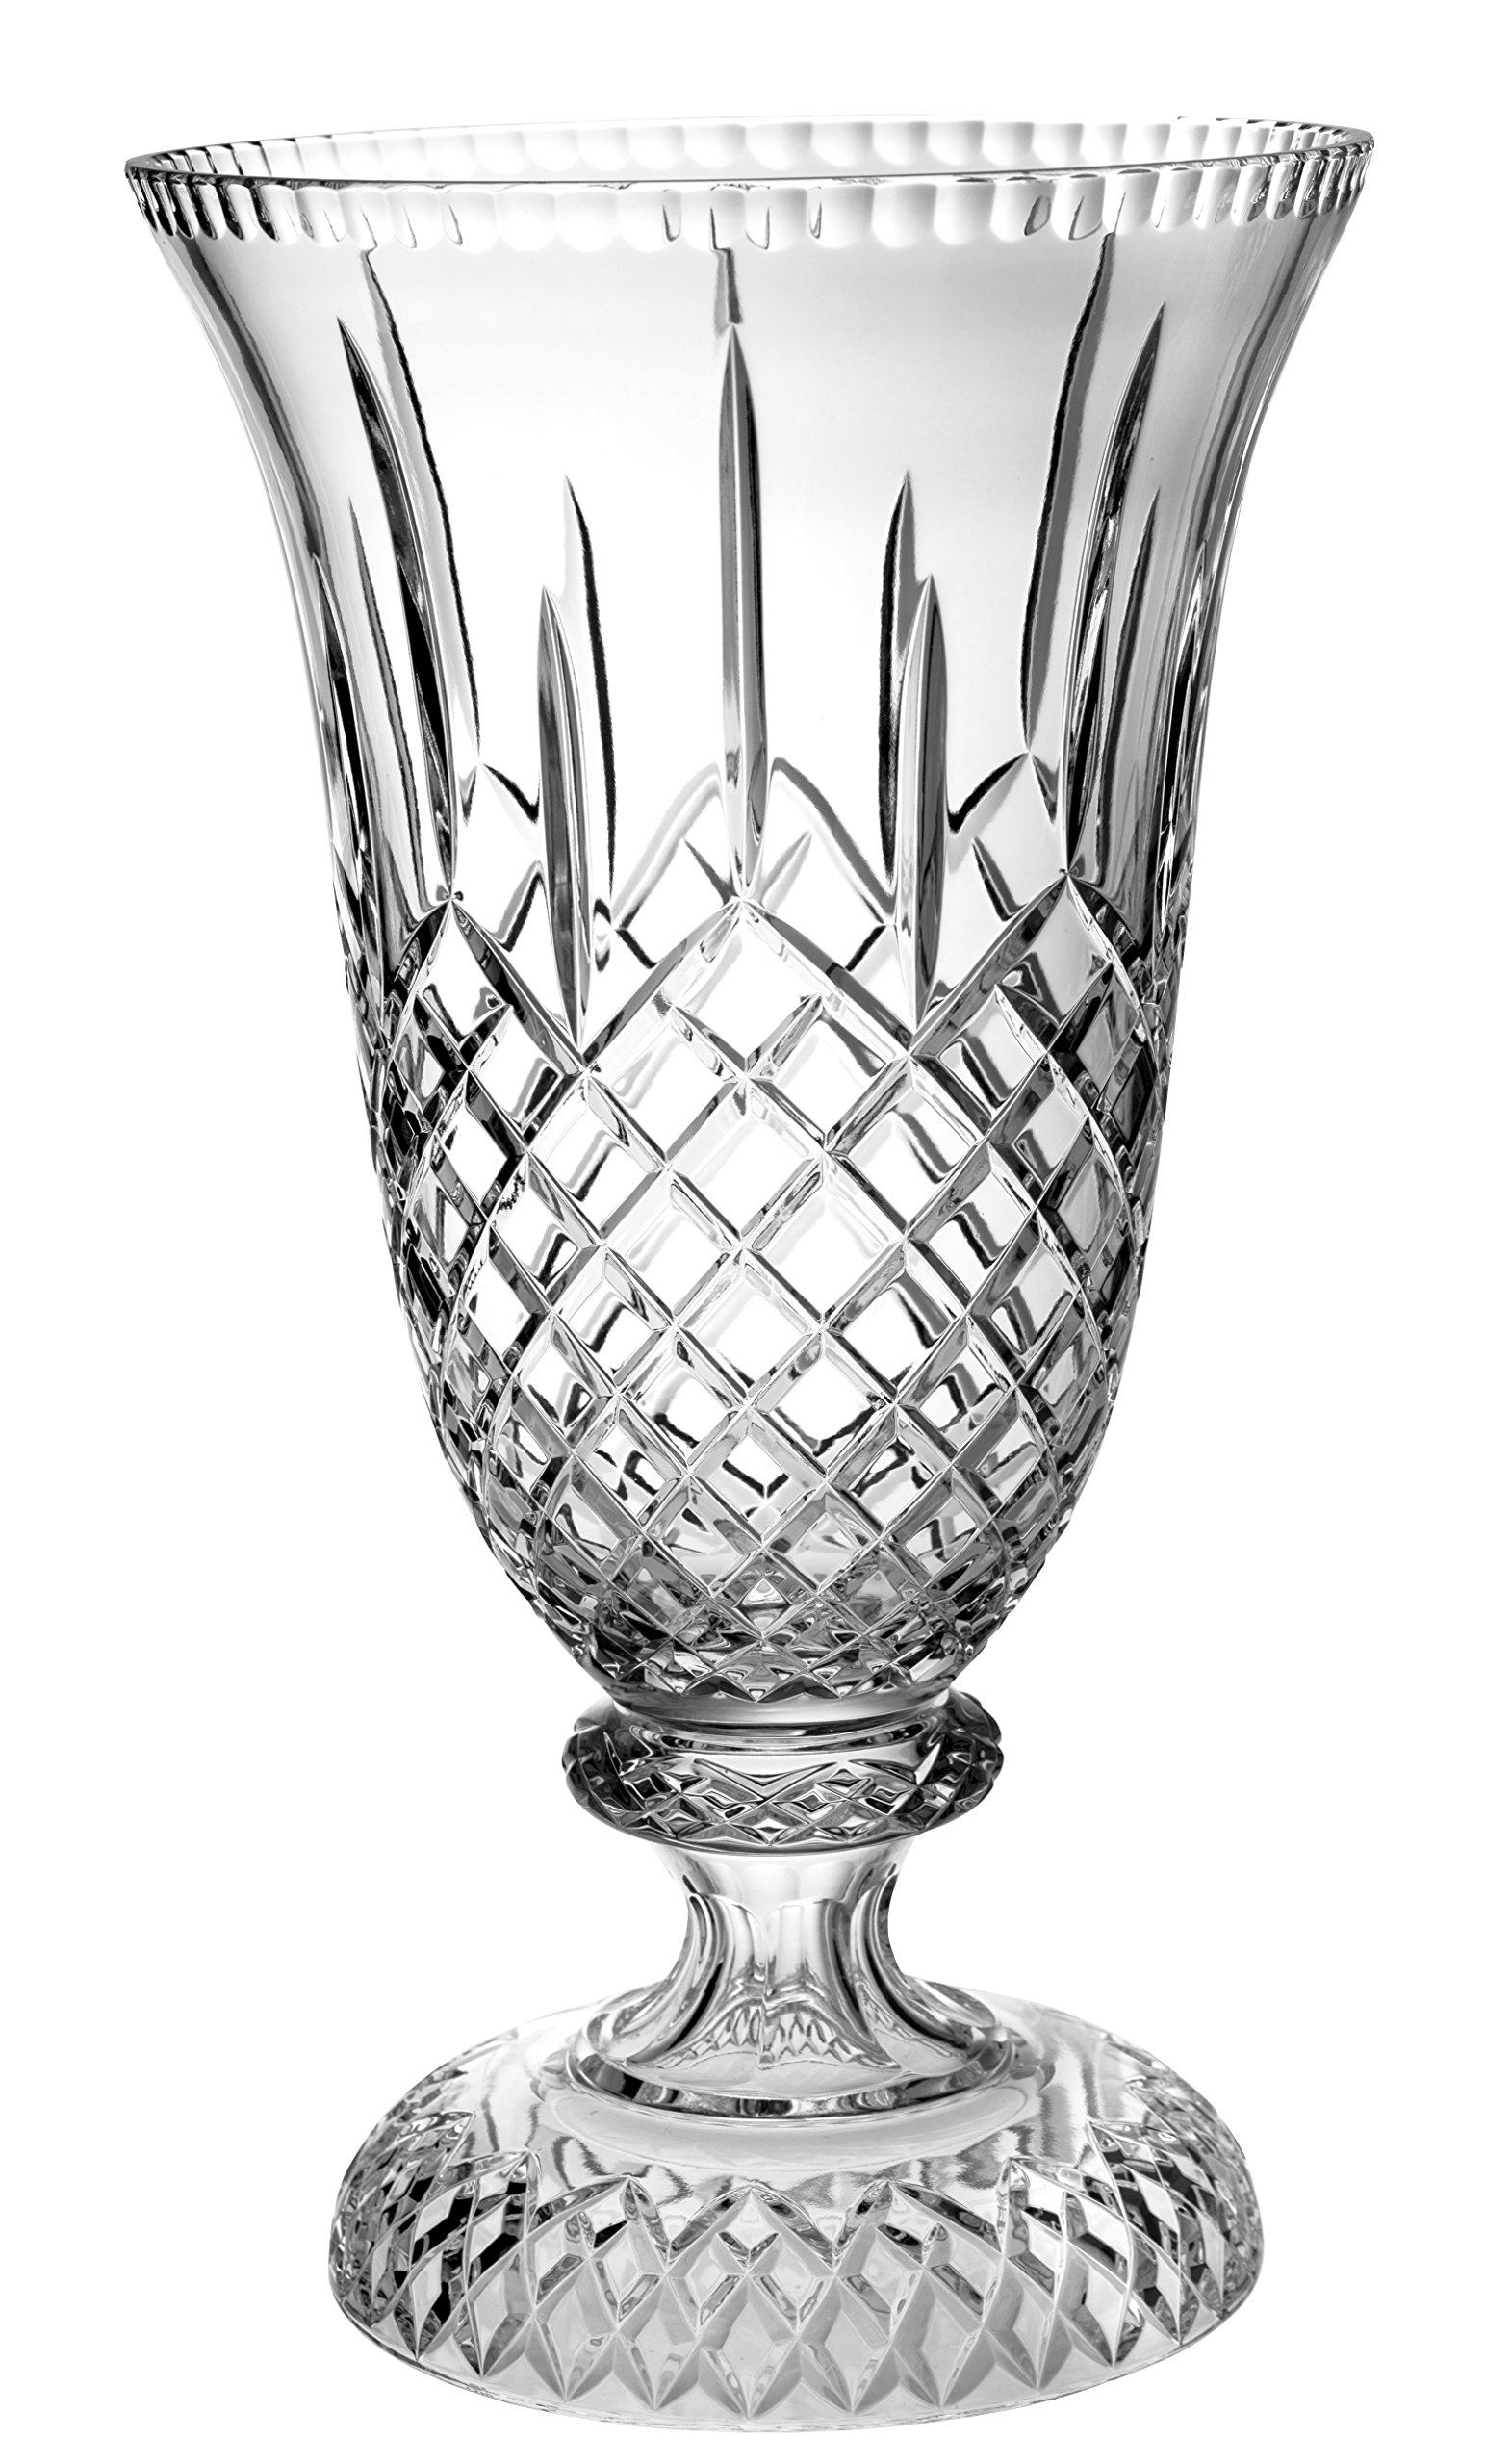 Superb Quality Crystal APL-118 Cut Crystal Centerpiece Footed Vase, 18''